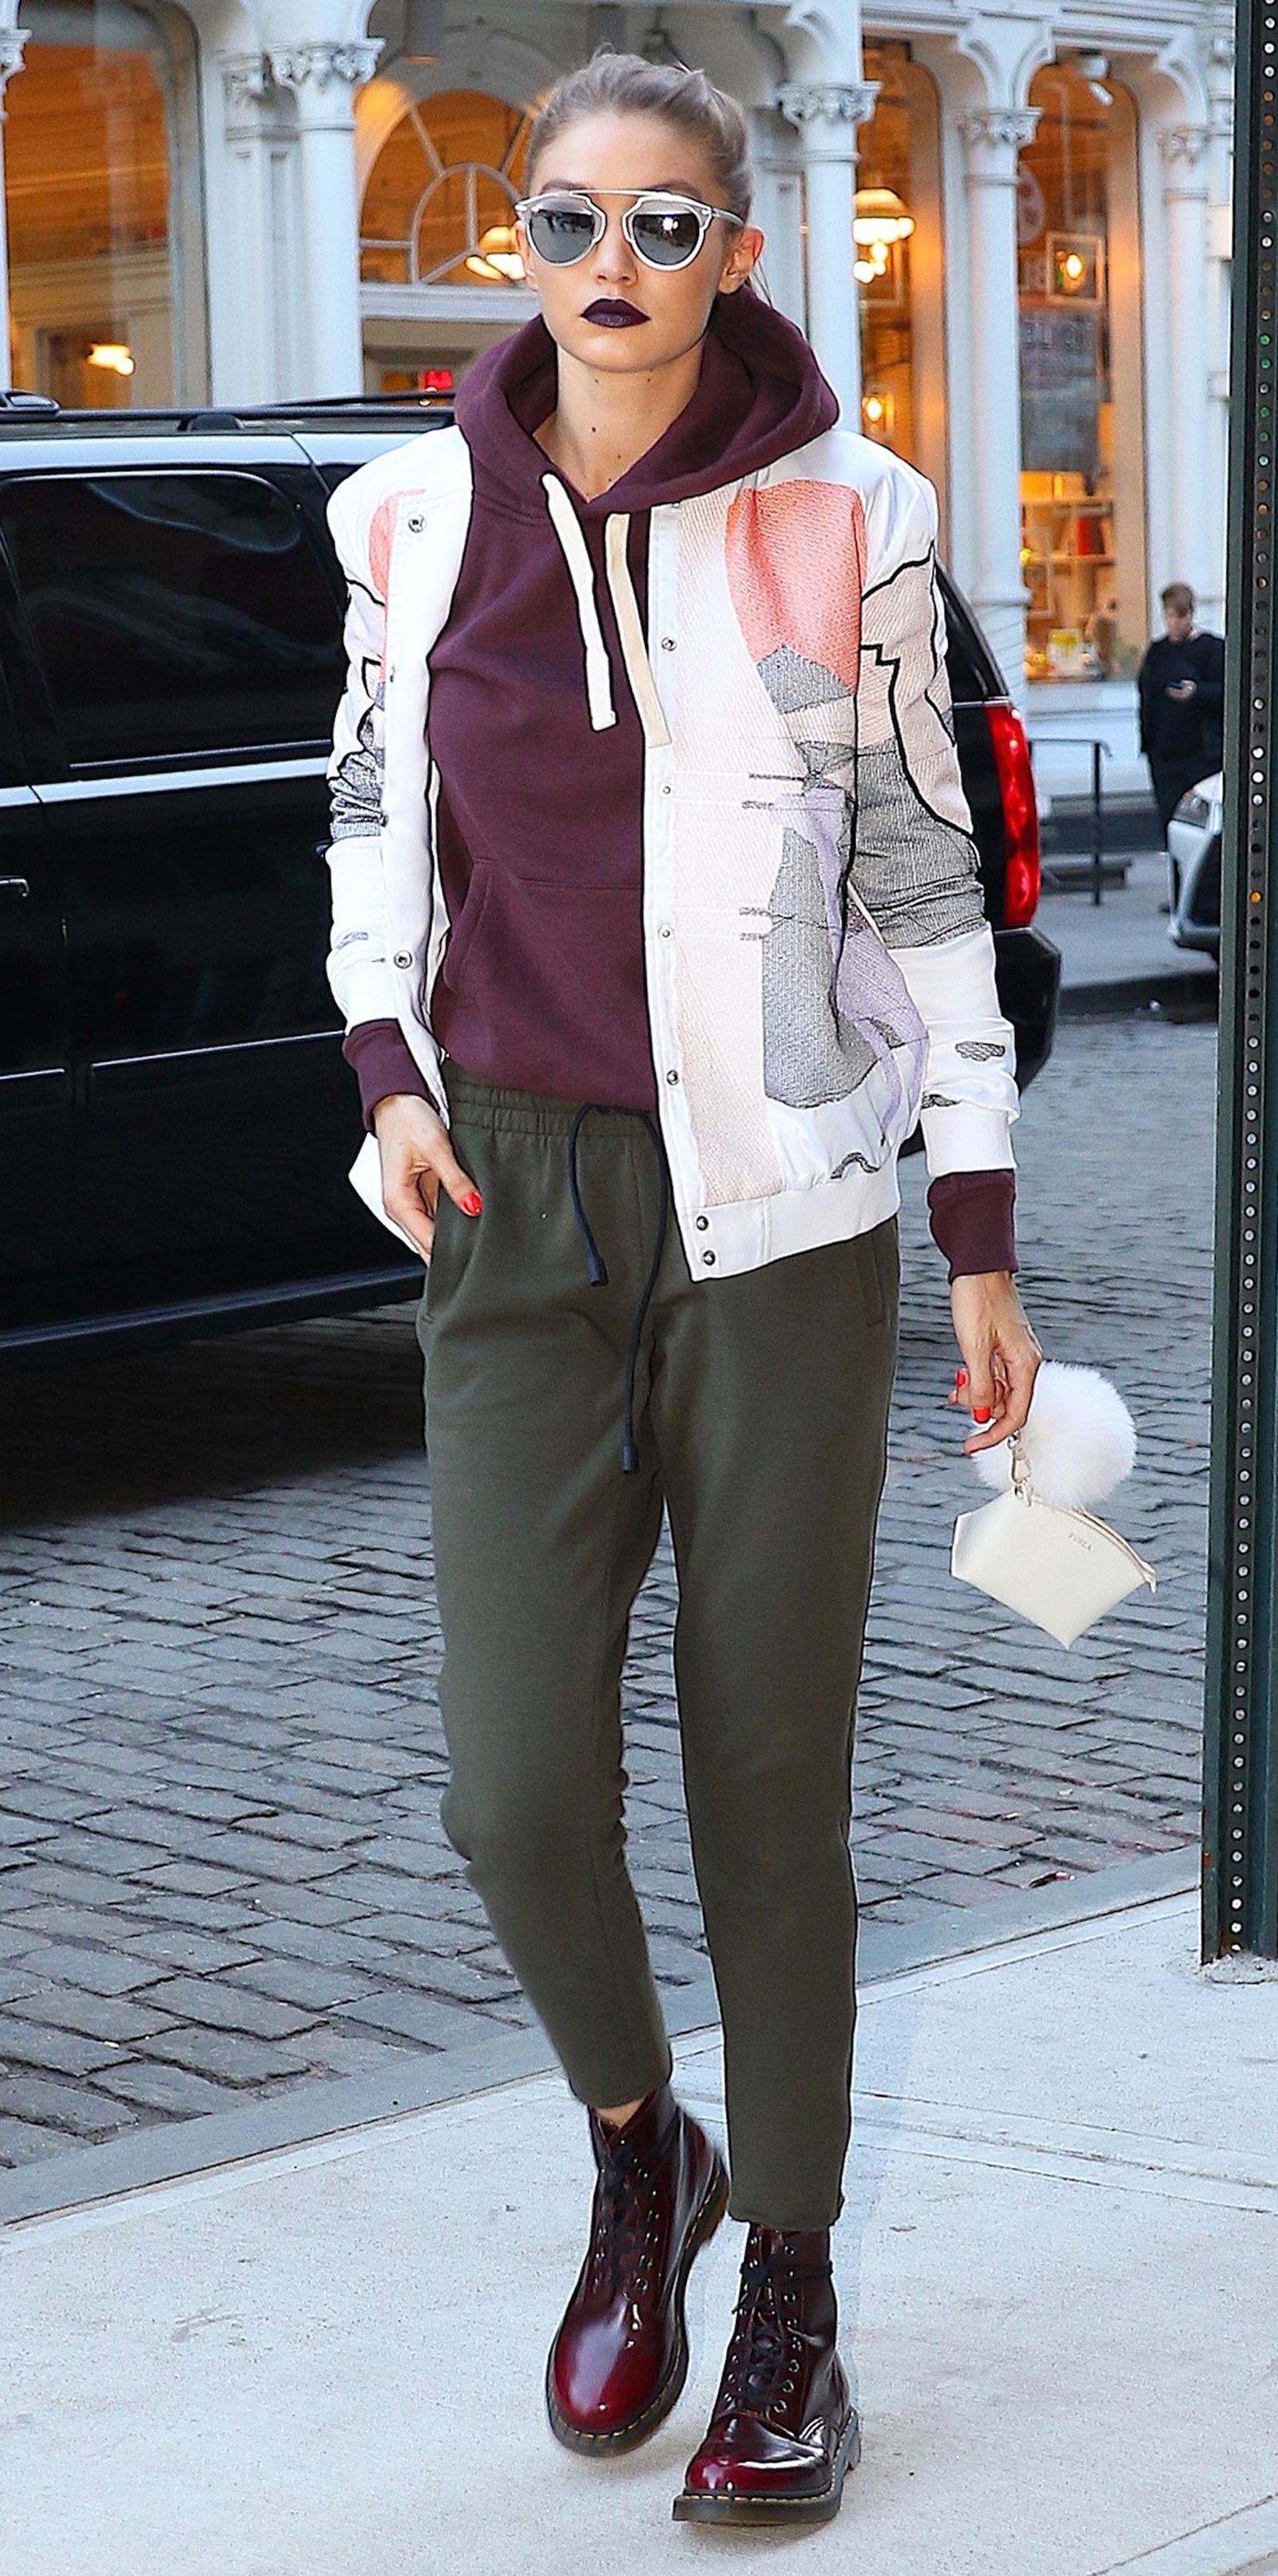 e110834ad0d Gigi Hadid s Best Street Style Moments - March 29